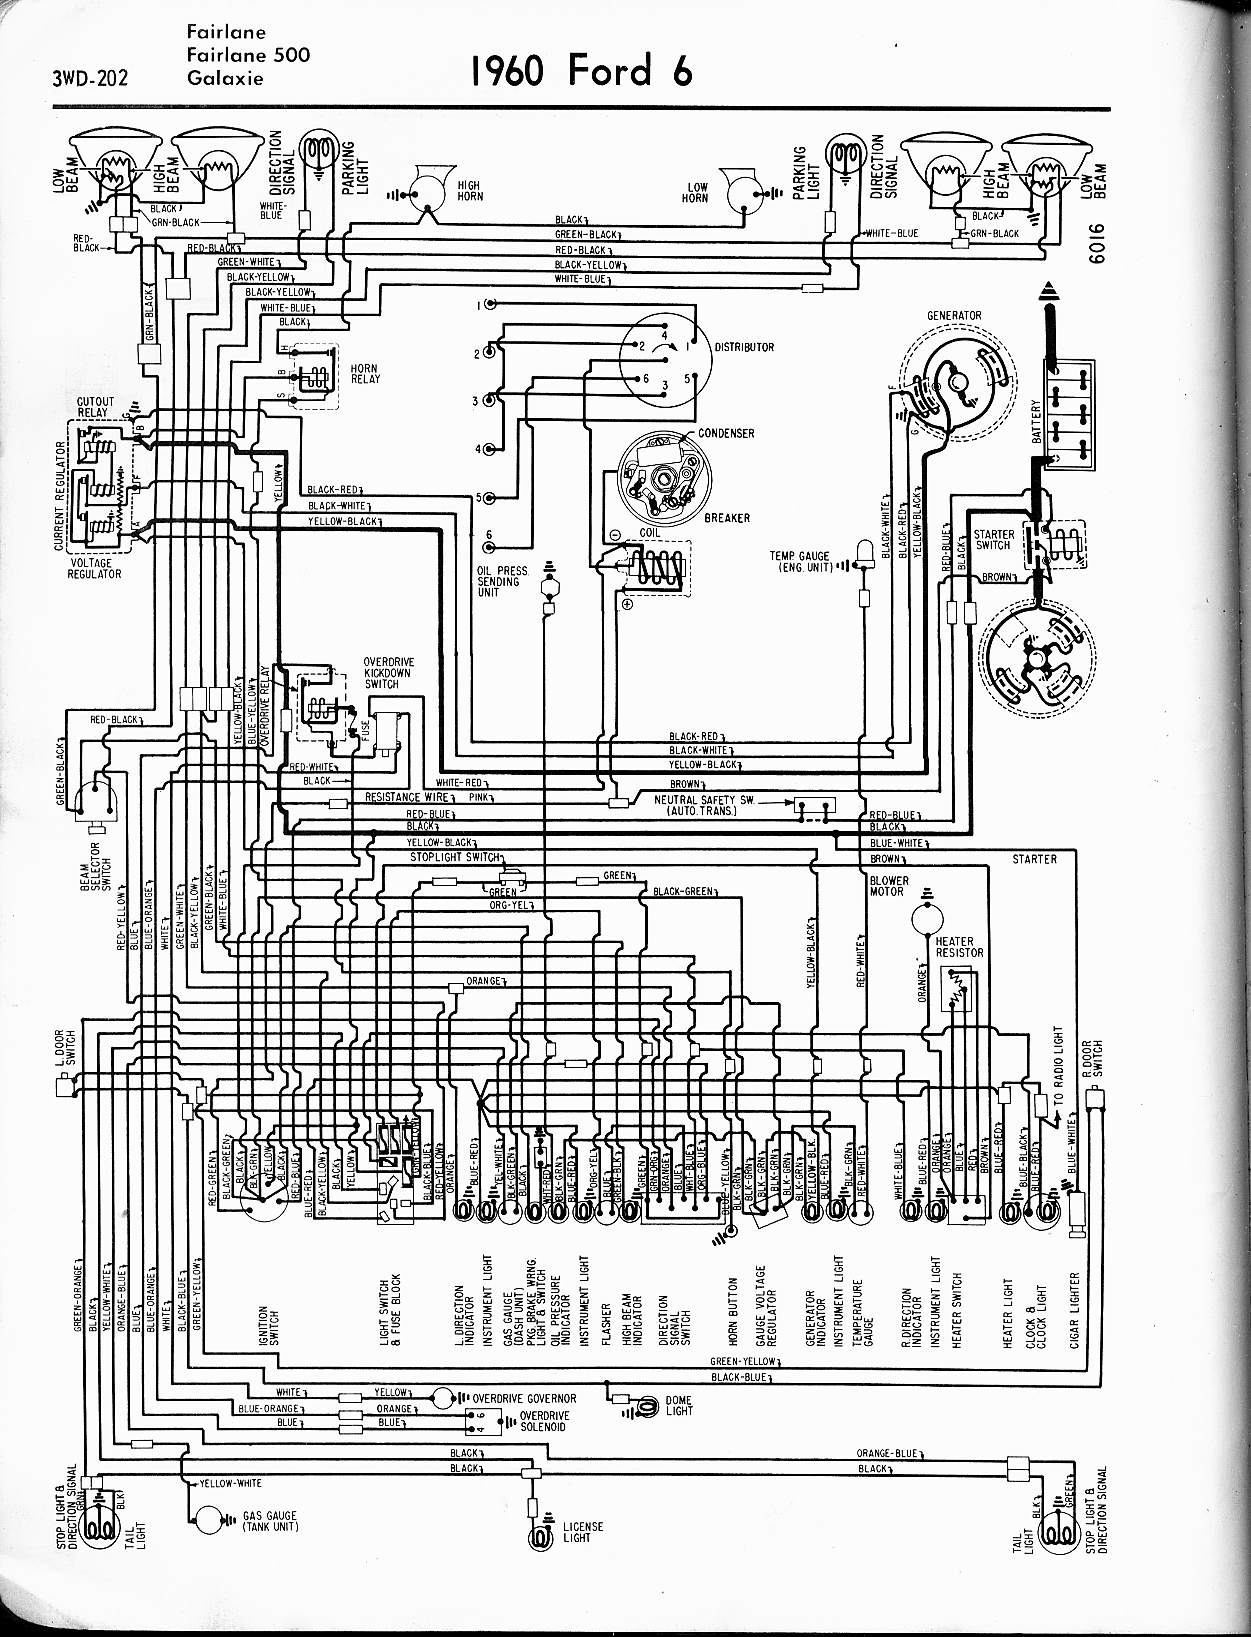 57 65 ford wiring diagrams 65 ford f100 black 1960 6 cyl fairlane, 500, galaxie